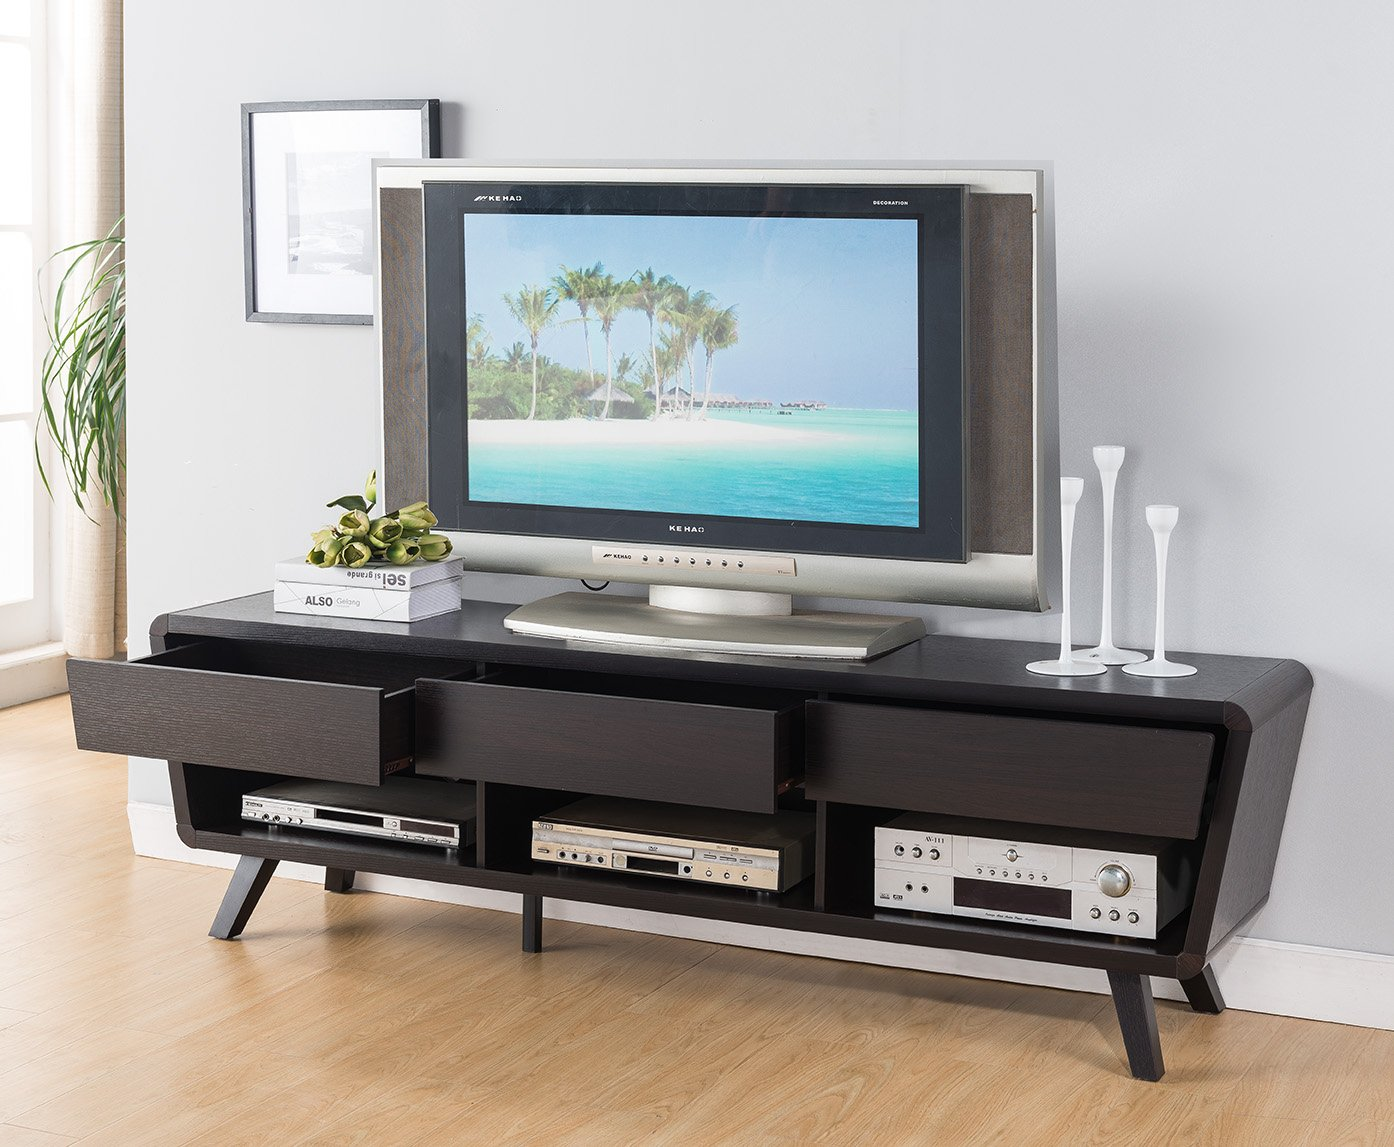 SMART HOME Suavis Media Console TV Stand (Red Cocoa) - 1 x Suavis Media Console TV Stand Finished in Red Cocoa Espresso Material: MDF and wood veneer for easy to clean - tv-stands, living-room-furniture, living-room - 71Bjqy3wTVL -